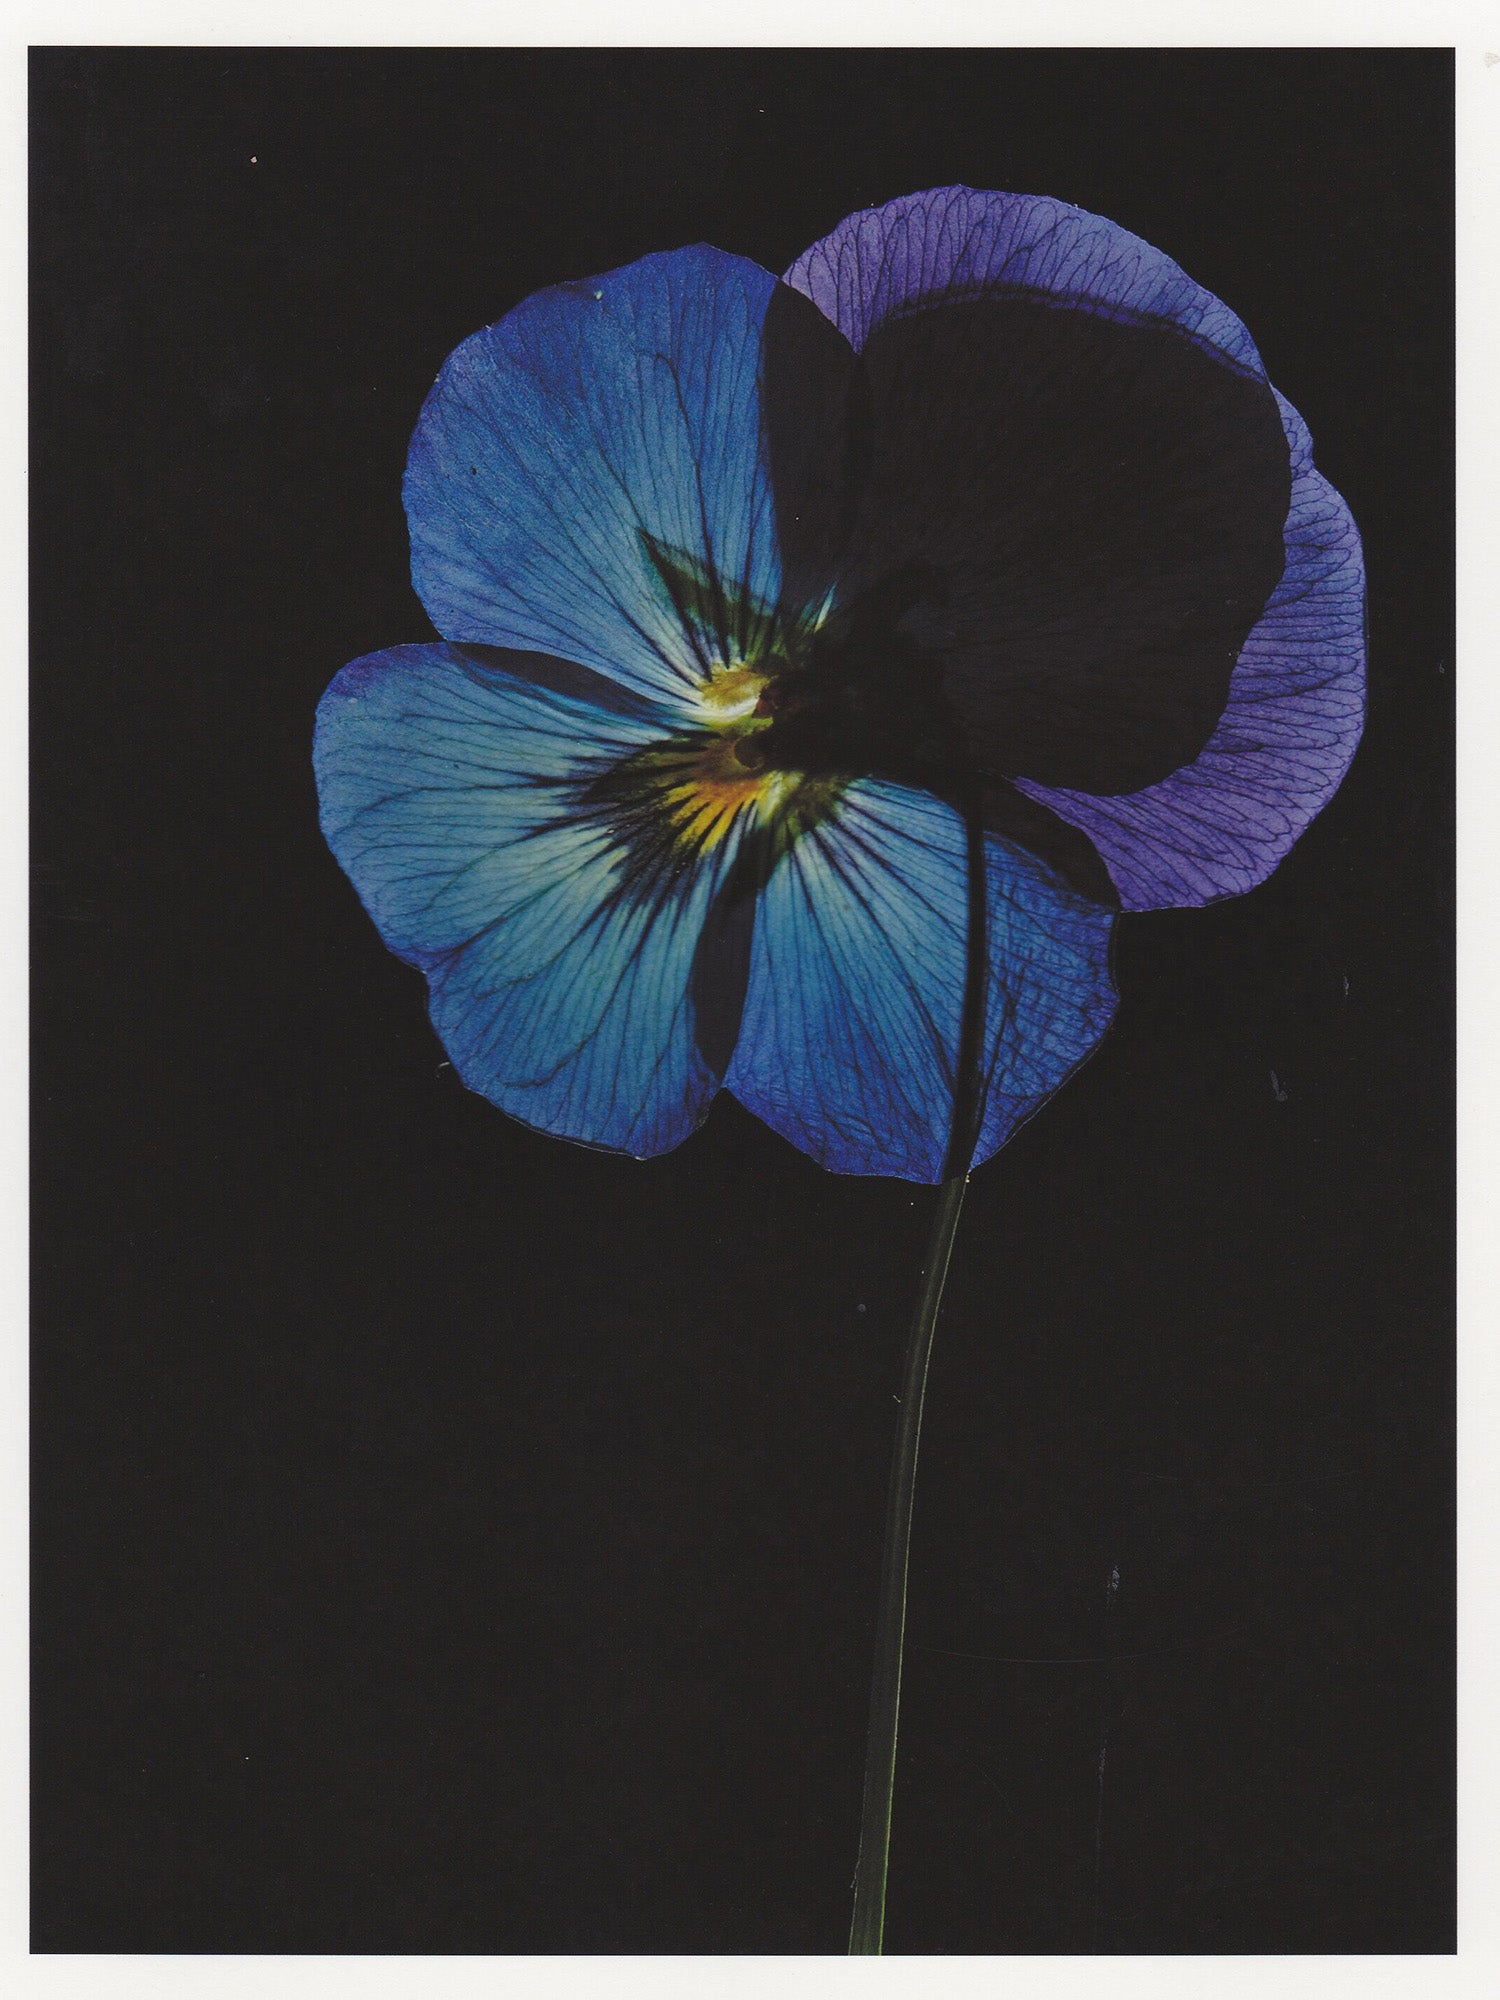 Pressed flowers with Robin Broadbent